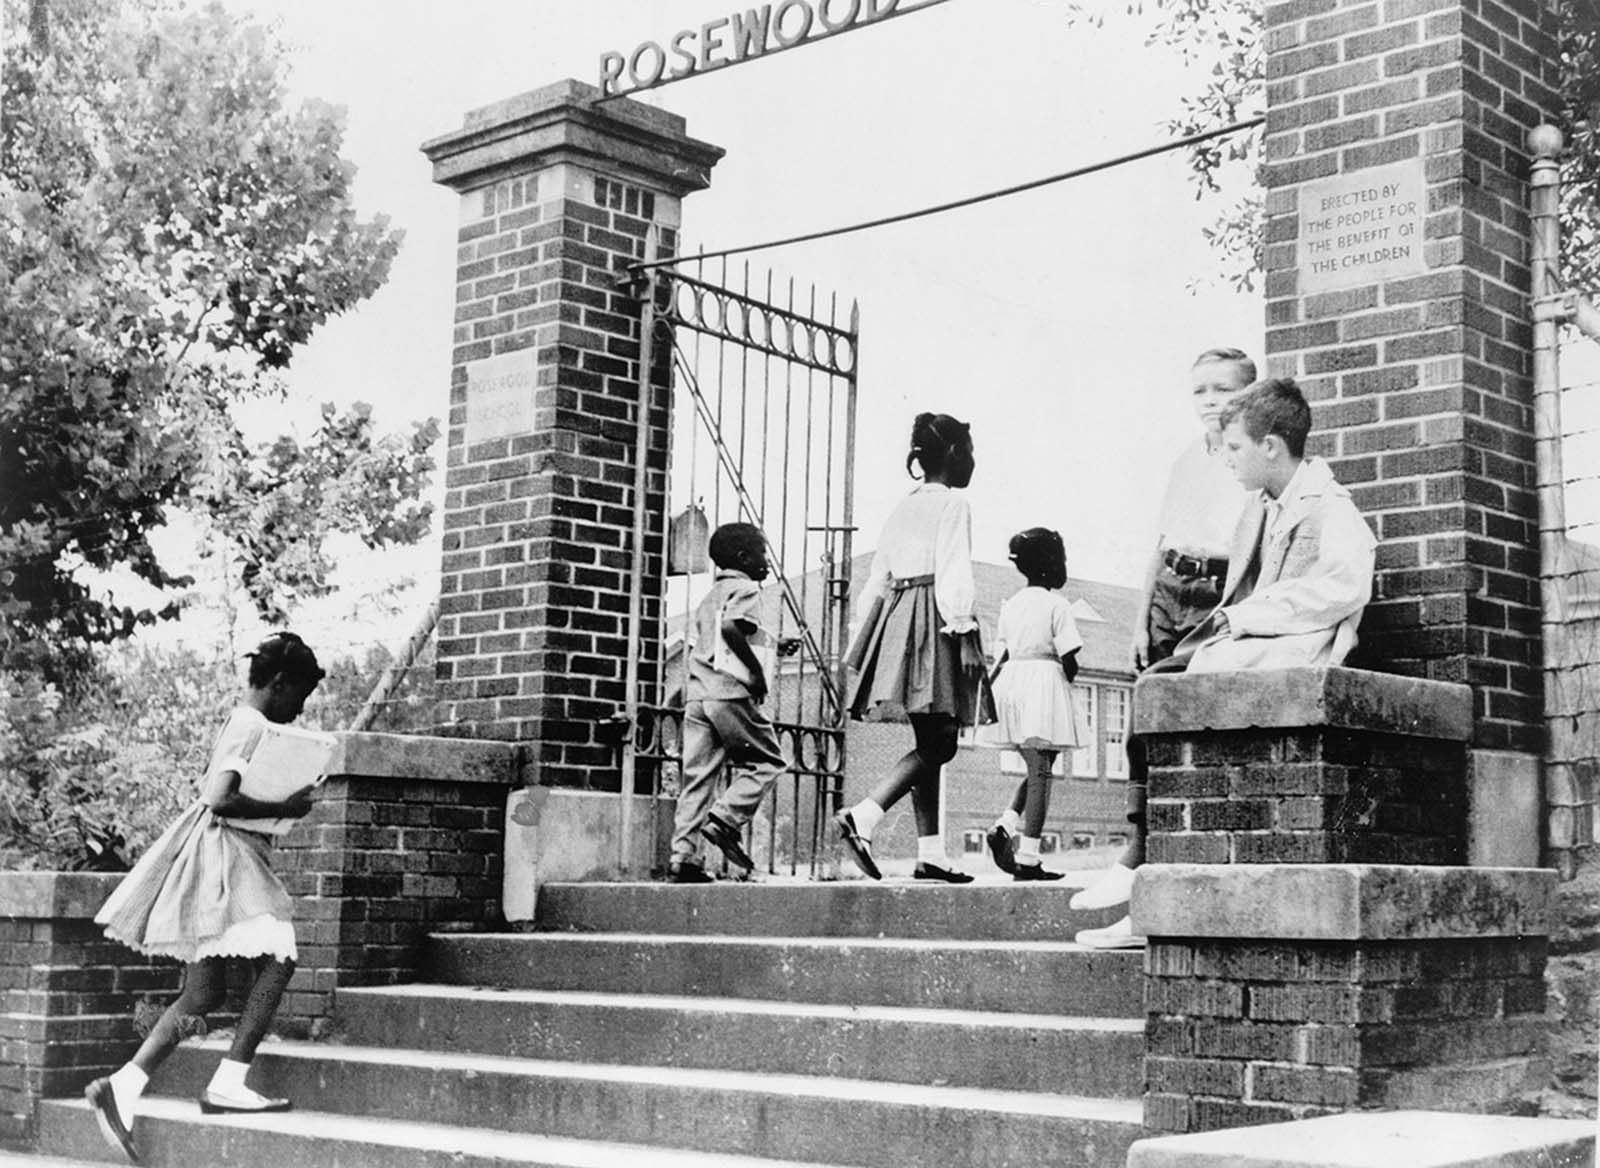 Two white students watch as African American children enter the previously all-white Rosewood Elementary School in Columbia, South Carolina, on August 31, 1964.